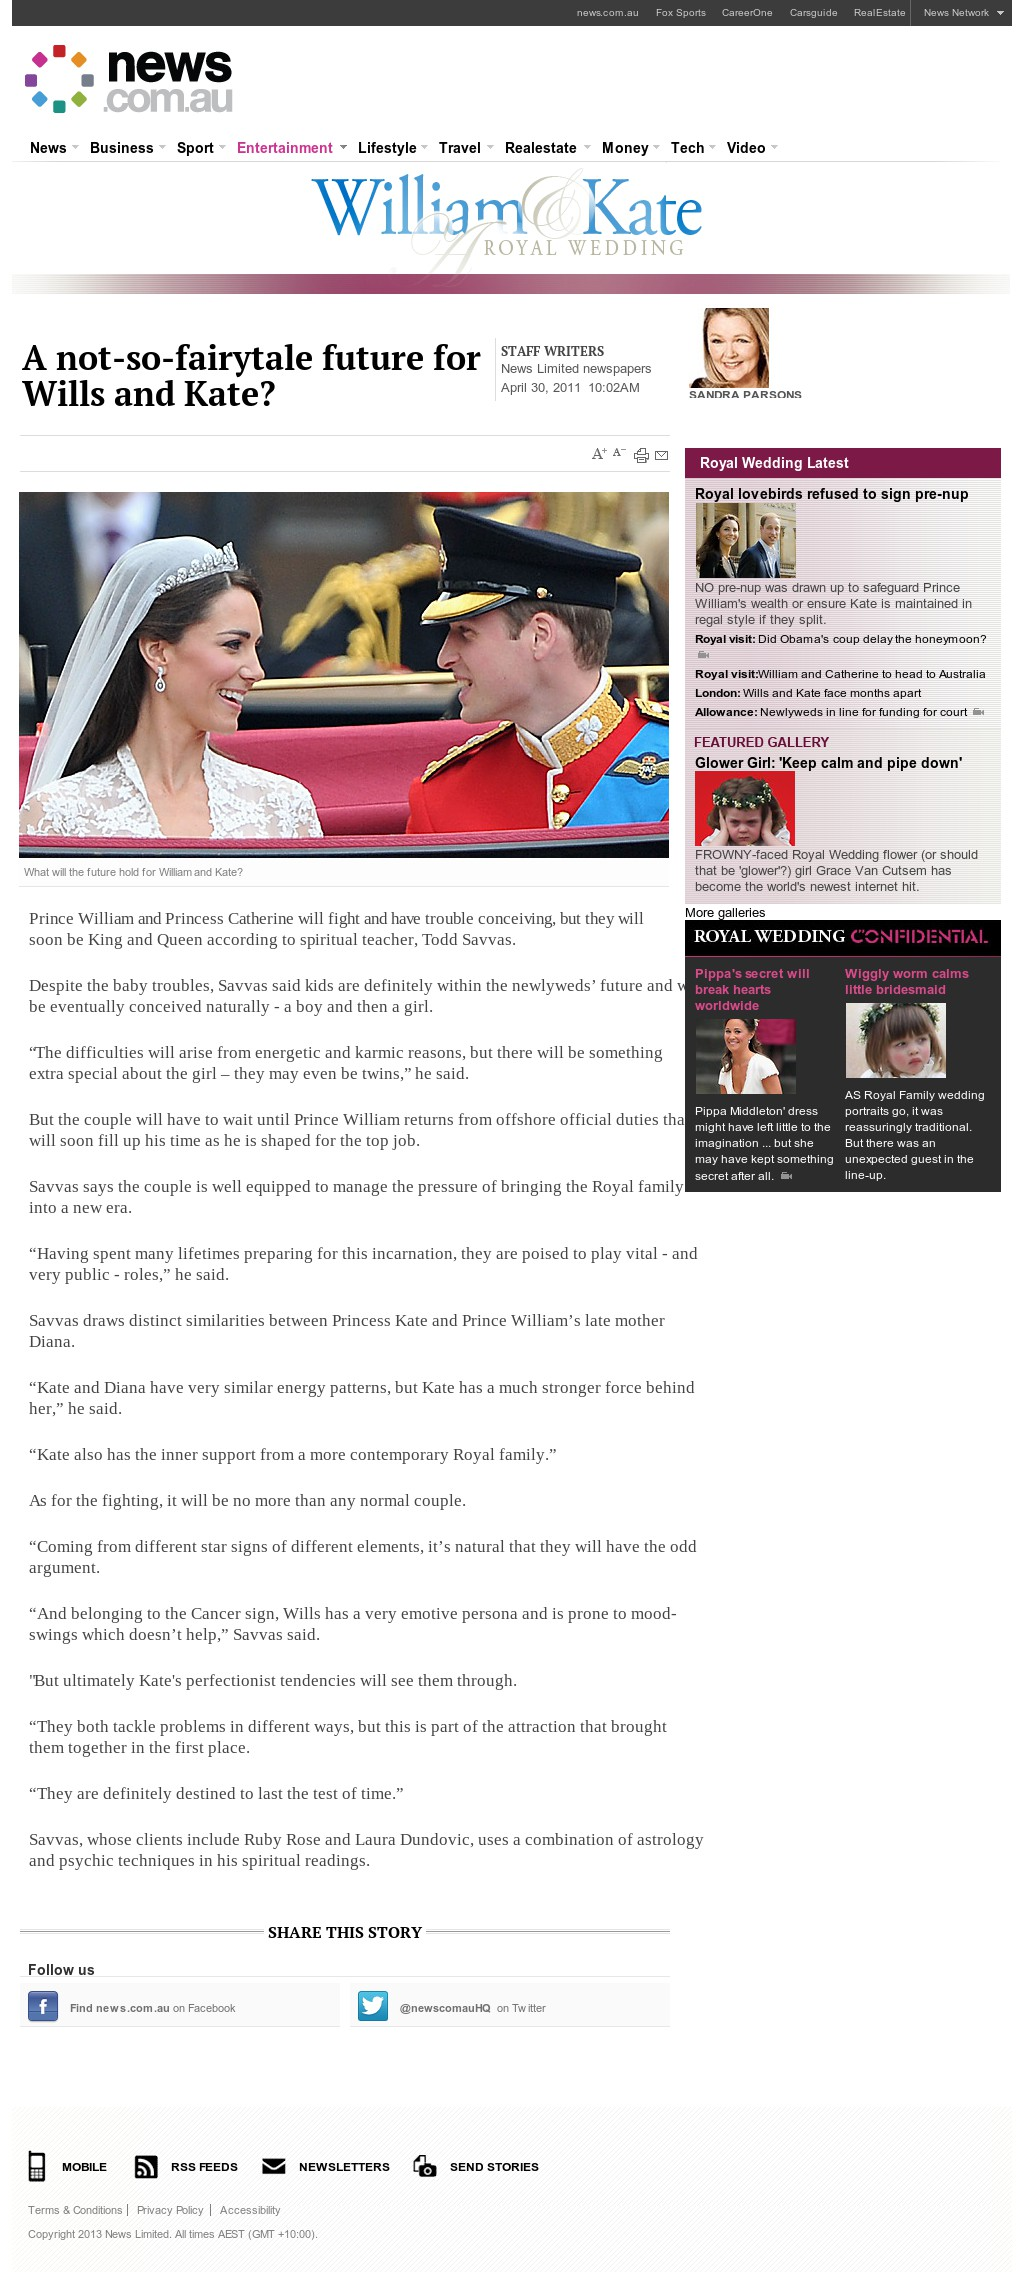 News.com.au - Entertainment - Royal Wedding 30042011